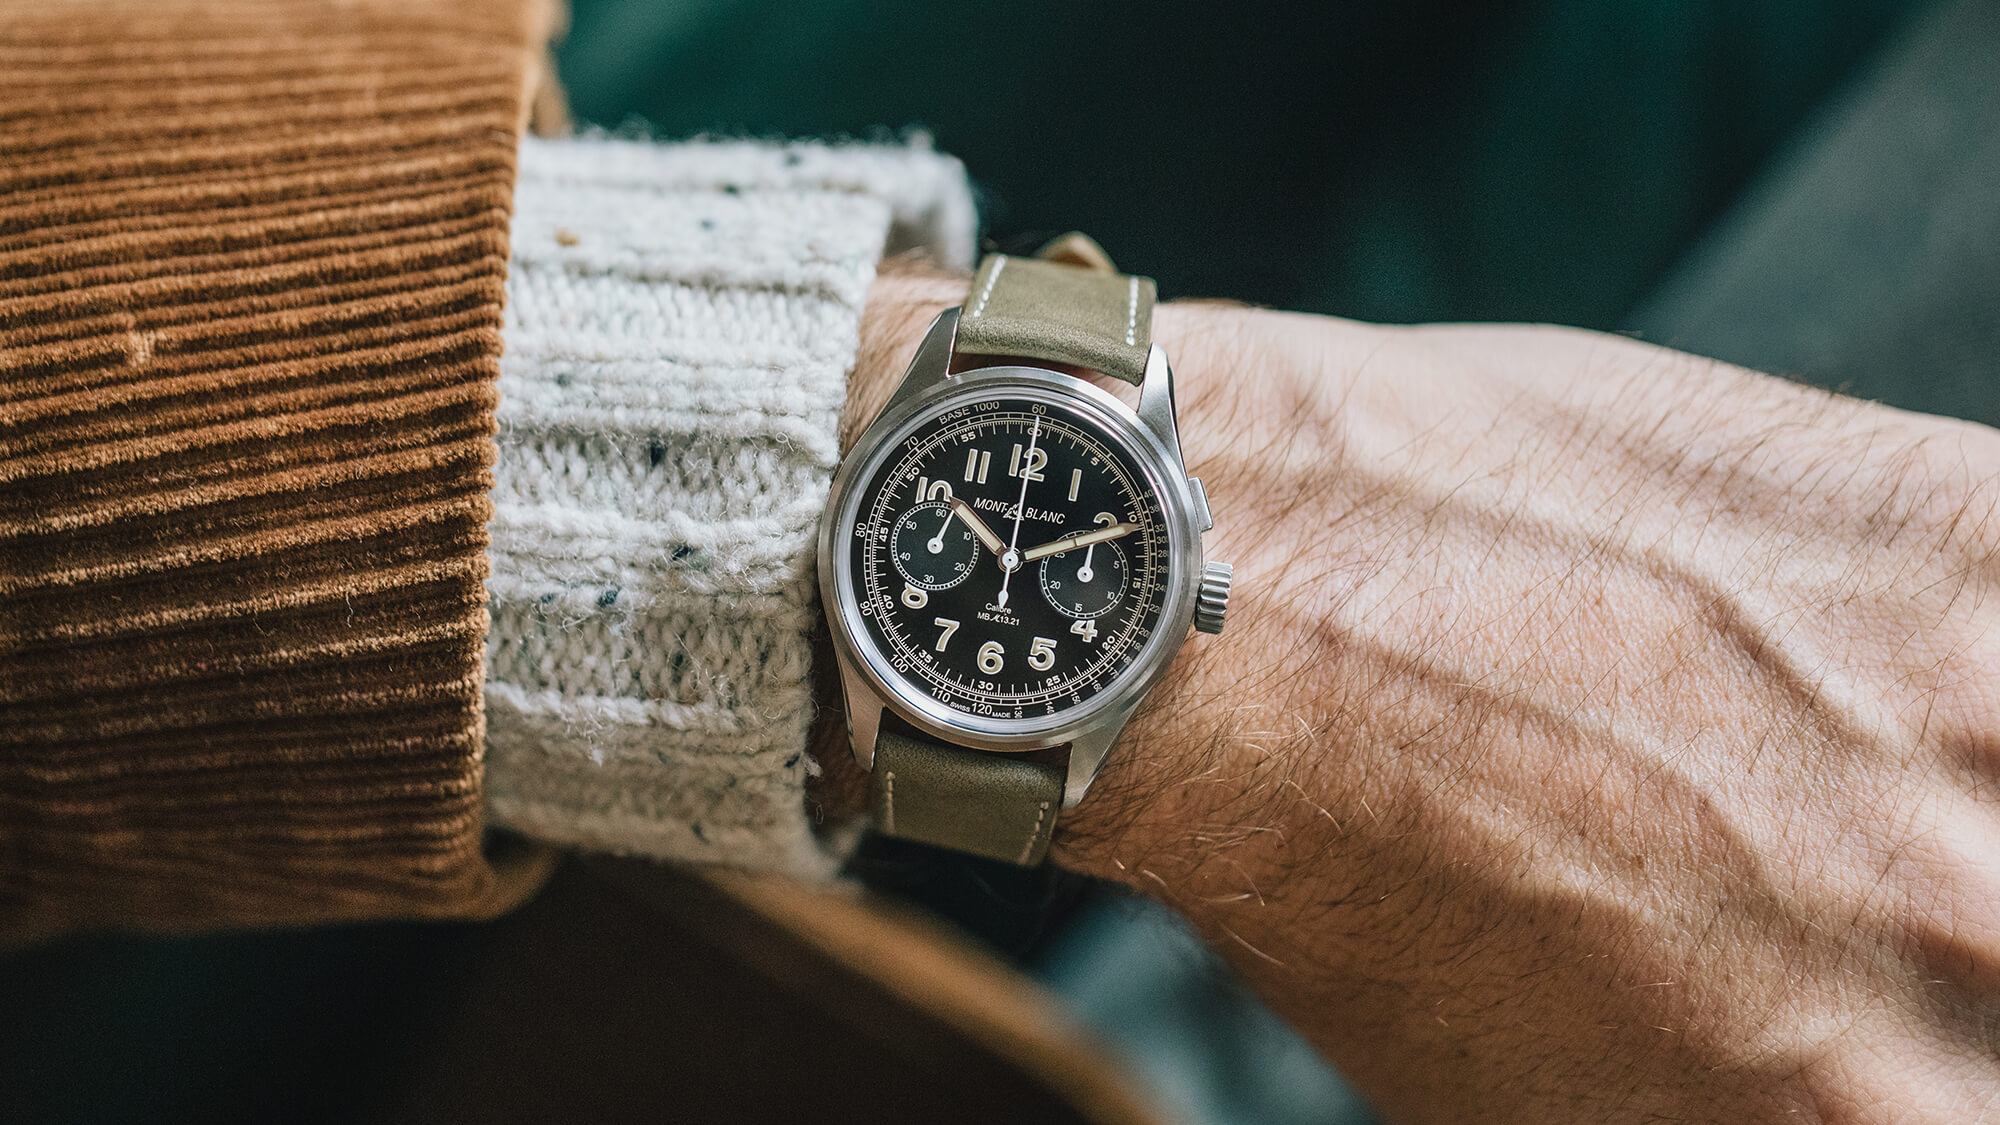 The HODINKEE x Montblanc 1858 Monopusher Watch Comes with a Trip to Montblanc Headquarters in the Jura Mountains